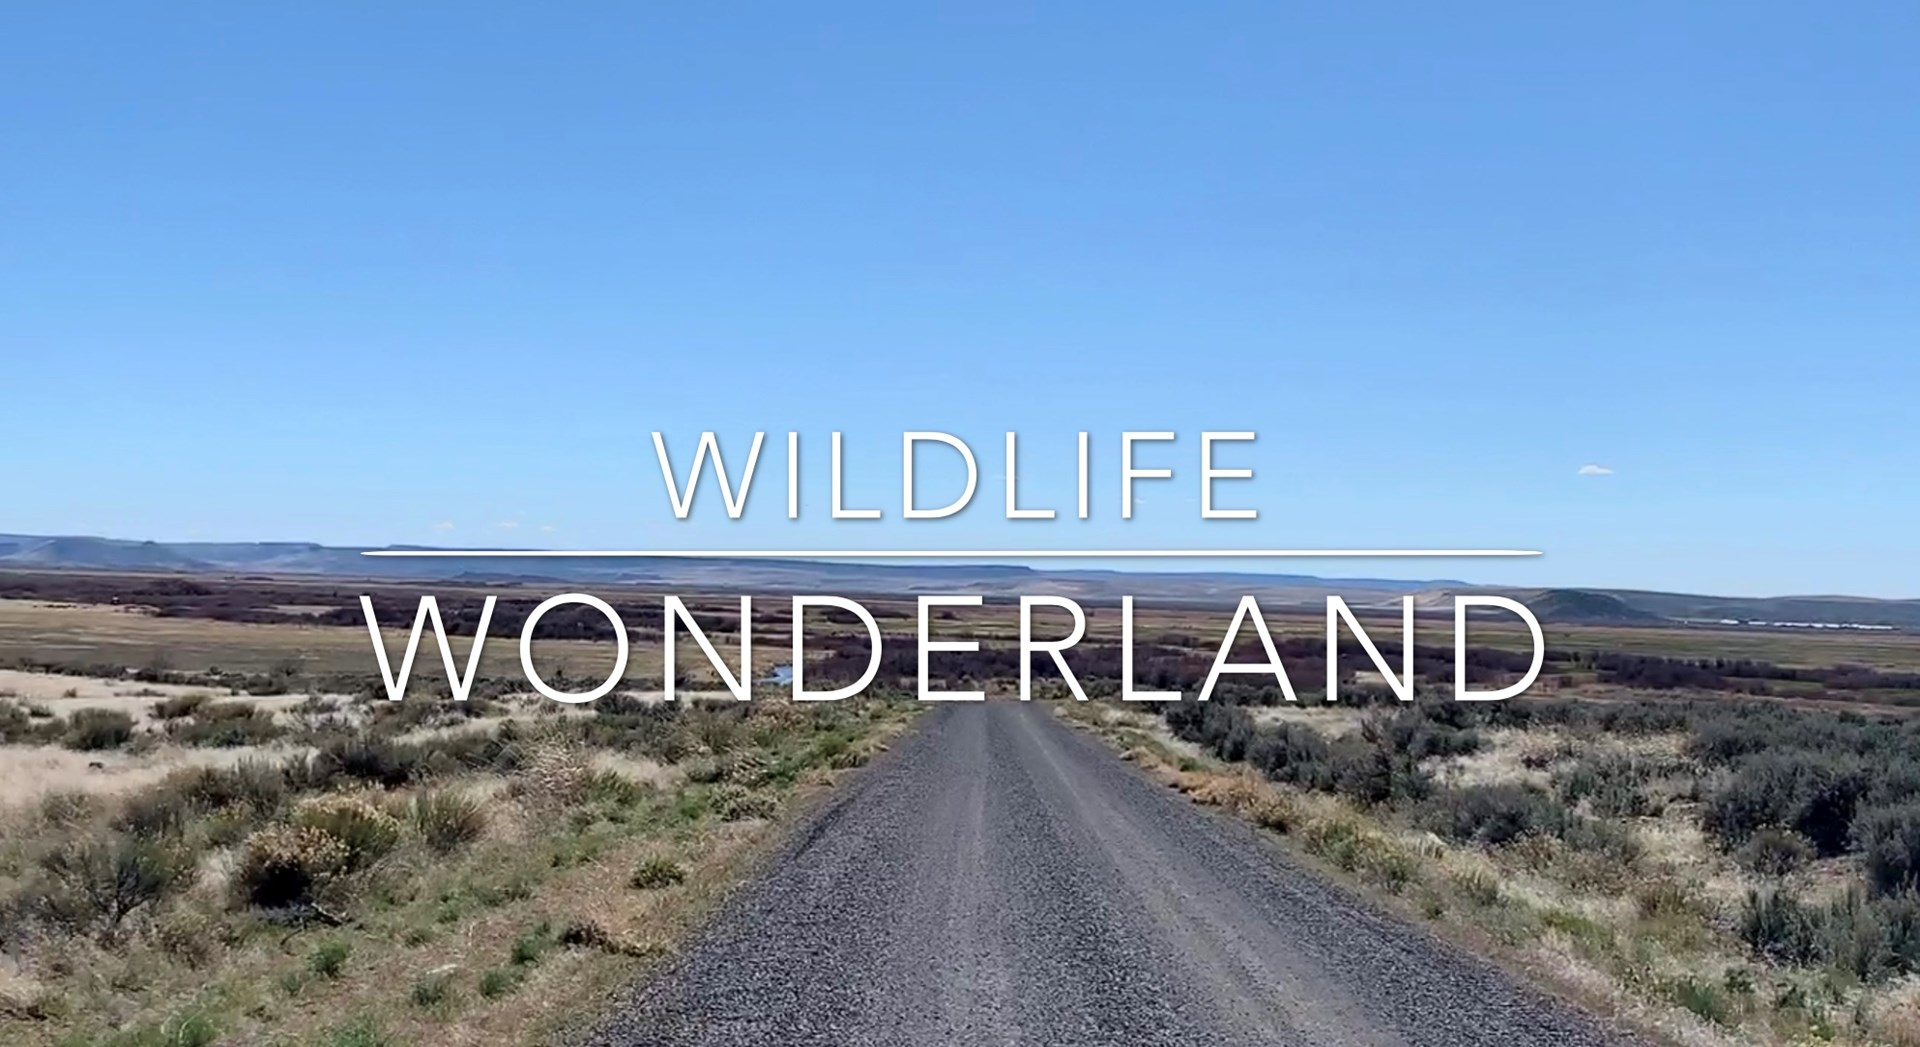 Wildlife Wonderland Boarding Refuge - 160 acres